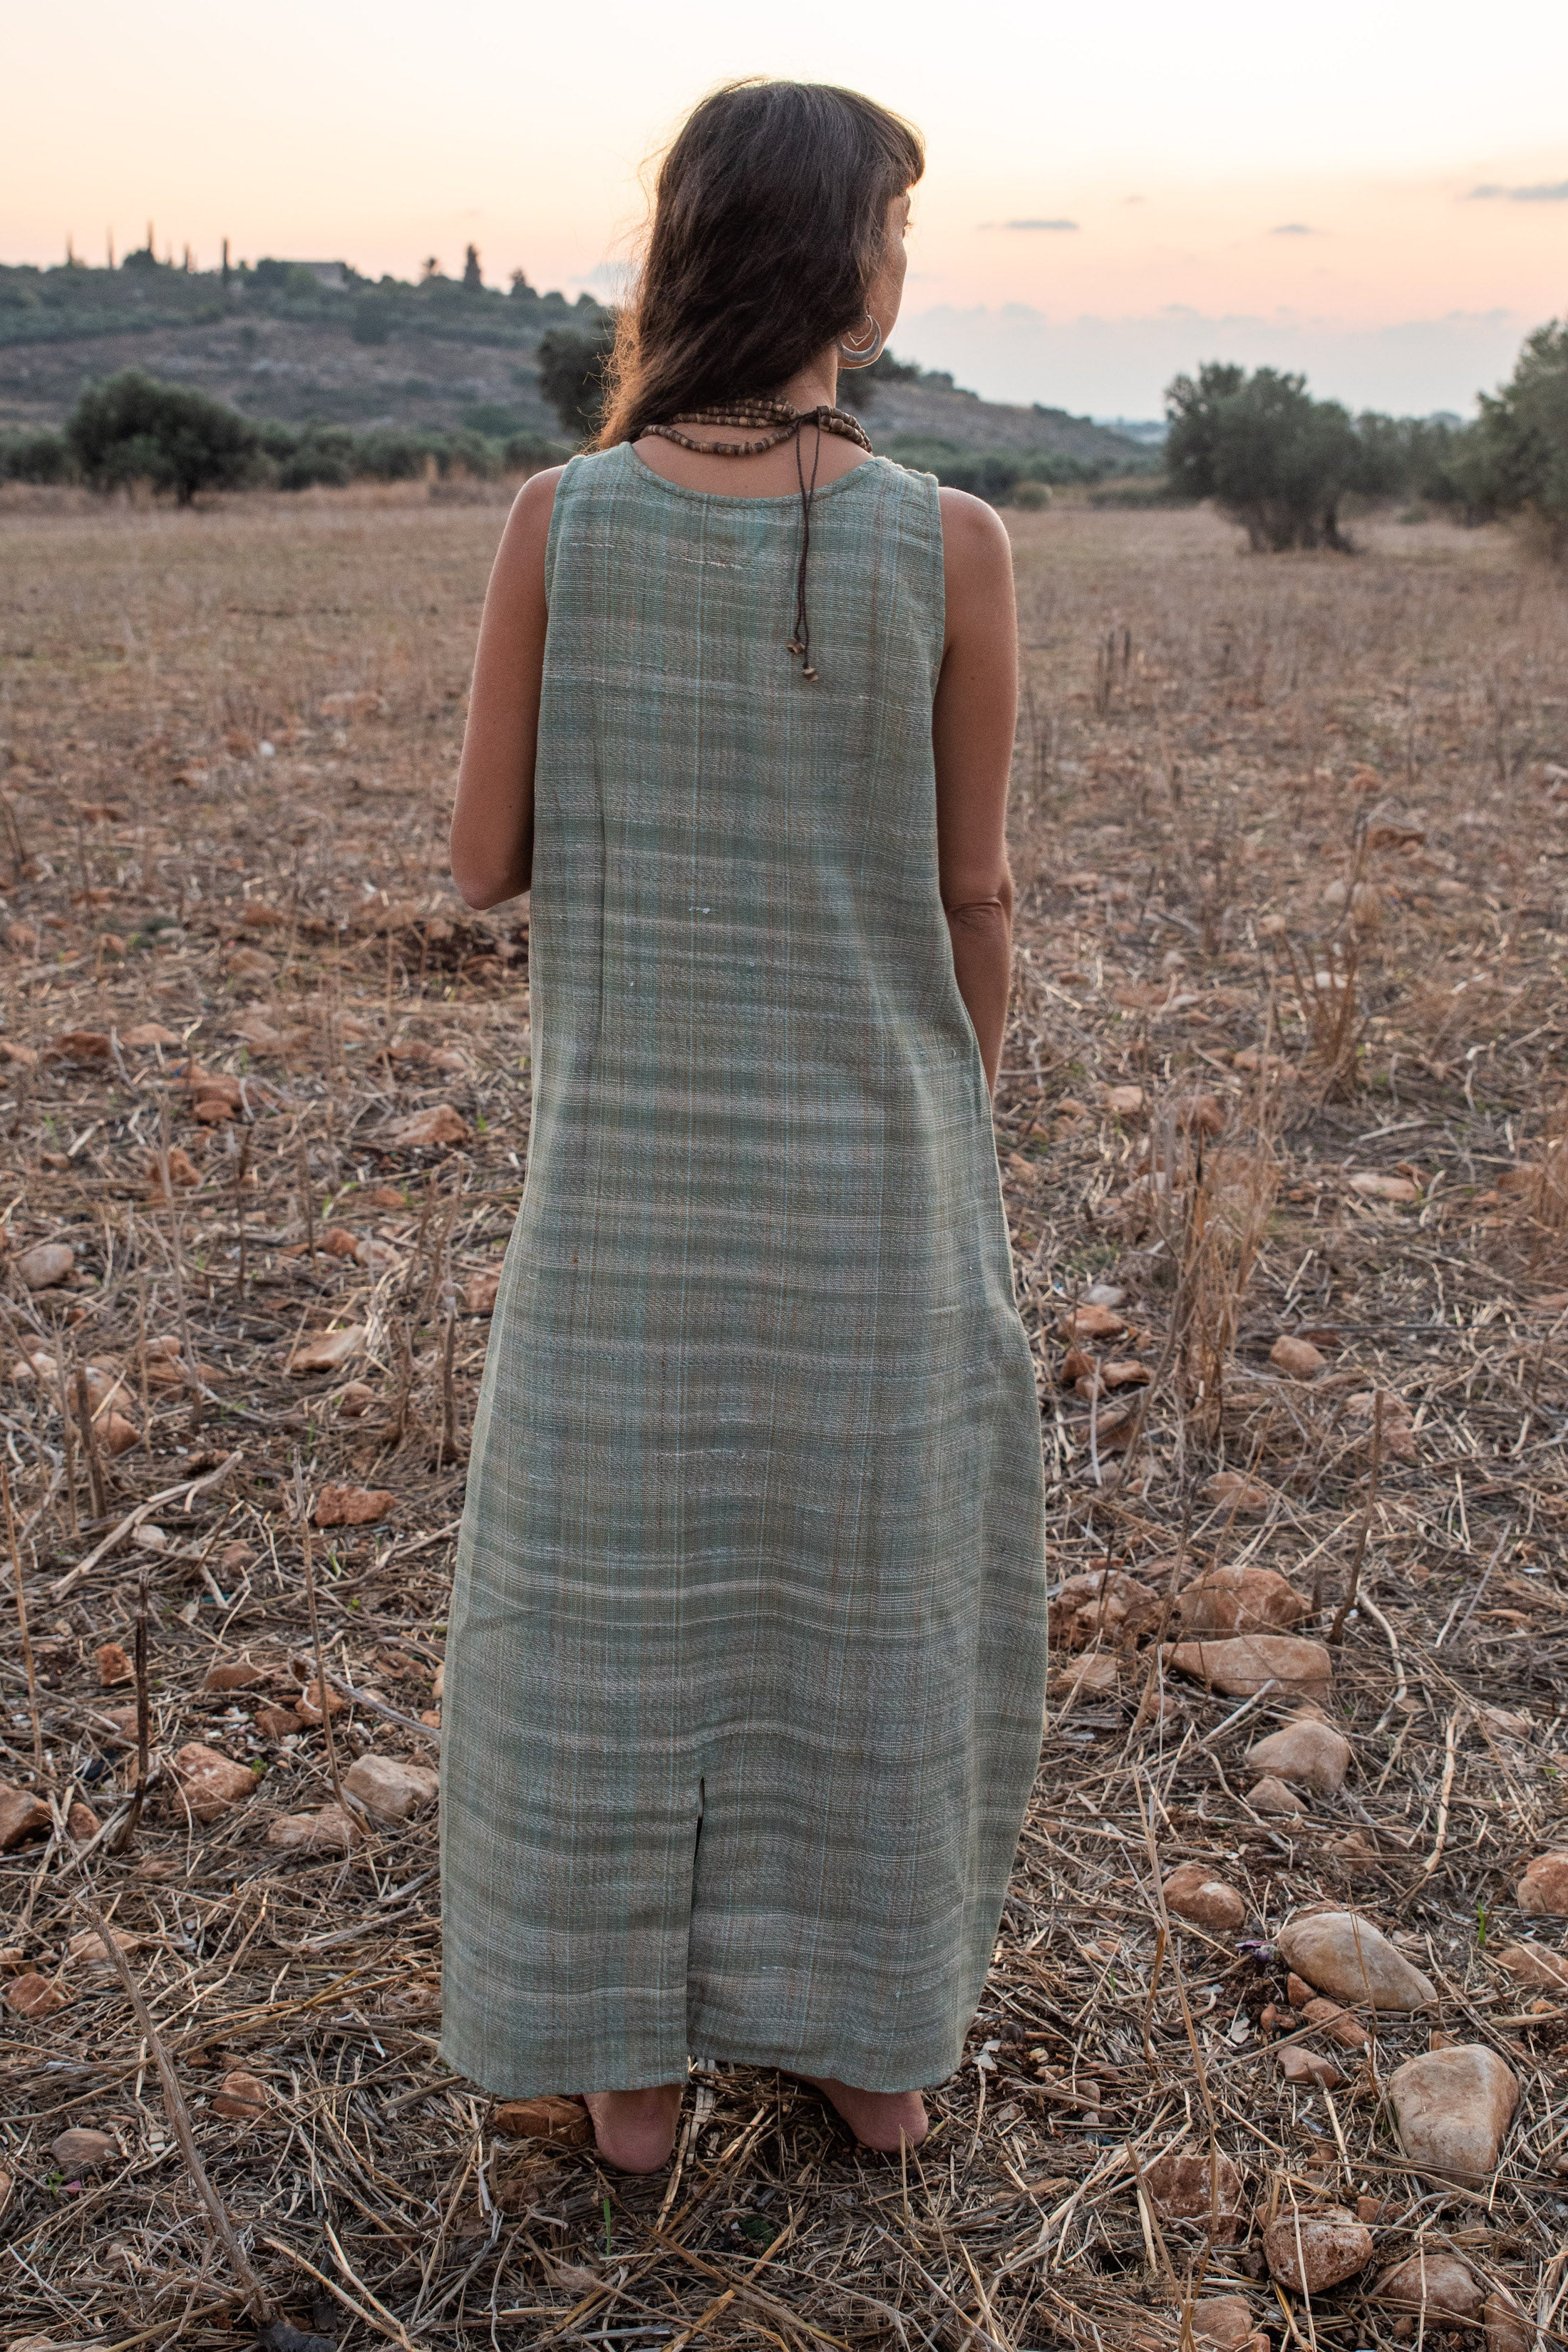 Sangam Dress. Khadi Cotton Dress. Handwoven Cotton Dress